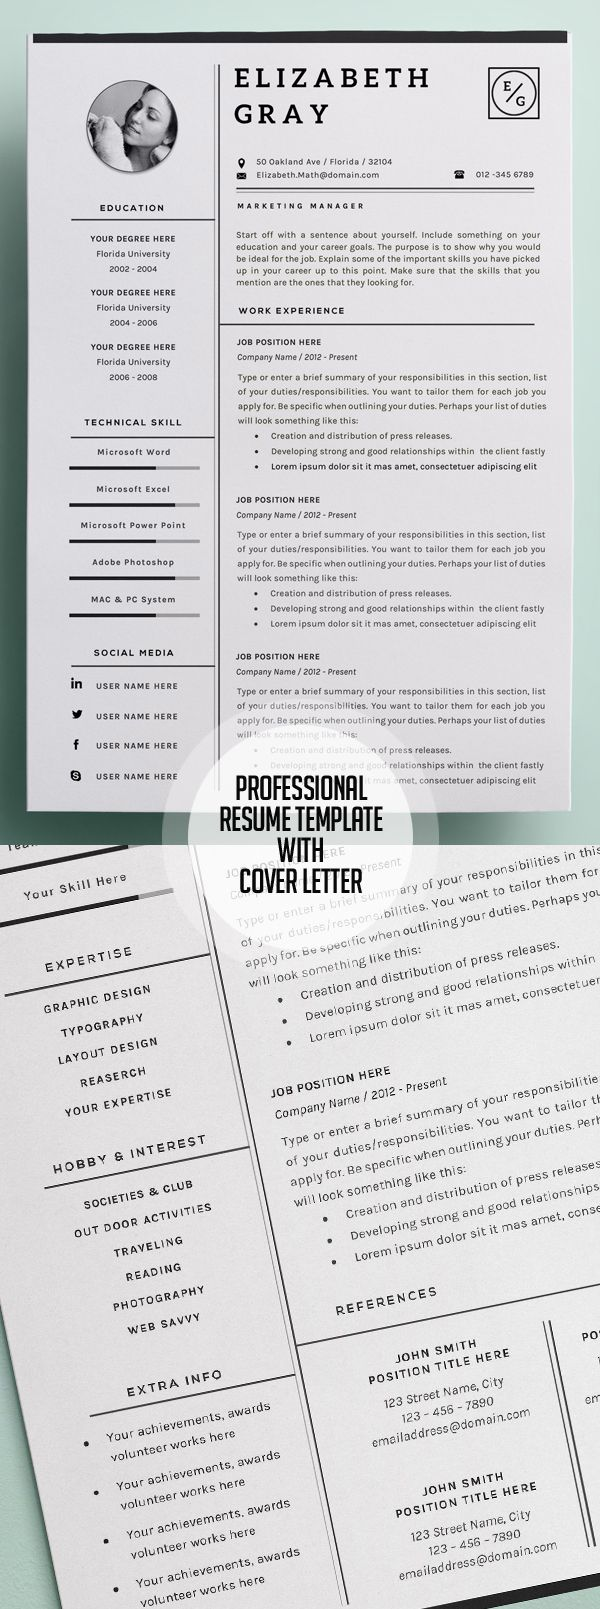 Opposenewapstandardsus  Unusual  Resume Ideas On Pinterest  Resume Resume Templates And  With Excellent Professional And Modern Resume Template With Page Cover Cvtemplate With Charming Receptionist Resume Sample Also Pharmacy Tech Resume In Addition Executive Summary Resume And Cover Letter Resume Examples As Well As General Manager Resume Additionally Resume For Bank Teller From Pinterestcom With Opposenewapstandardsus  Excellent  Resume Ideas On Pinterest  Resume Resume Templates And  With Charming Professional And Modern Resume Template With Page Cover Cvtemplate And Unusual Receptionist Resume Sample Also Pharmacy Tech Resume In Addition Executive Summary Resume From Pinterestcom